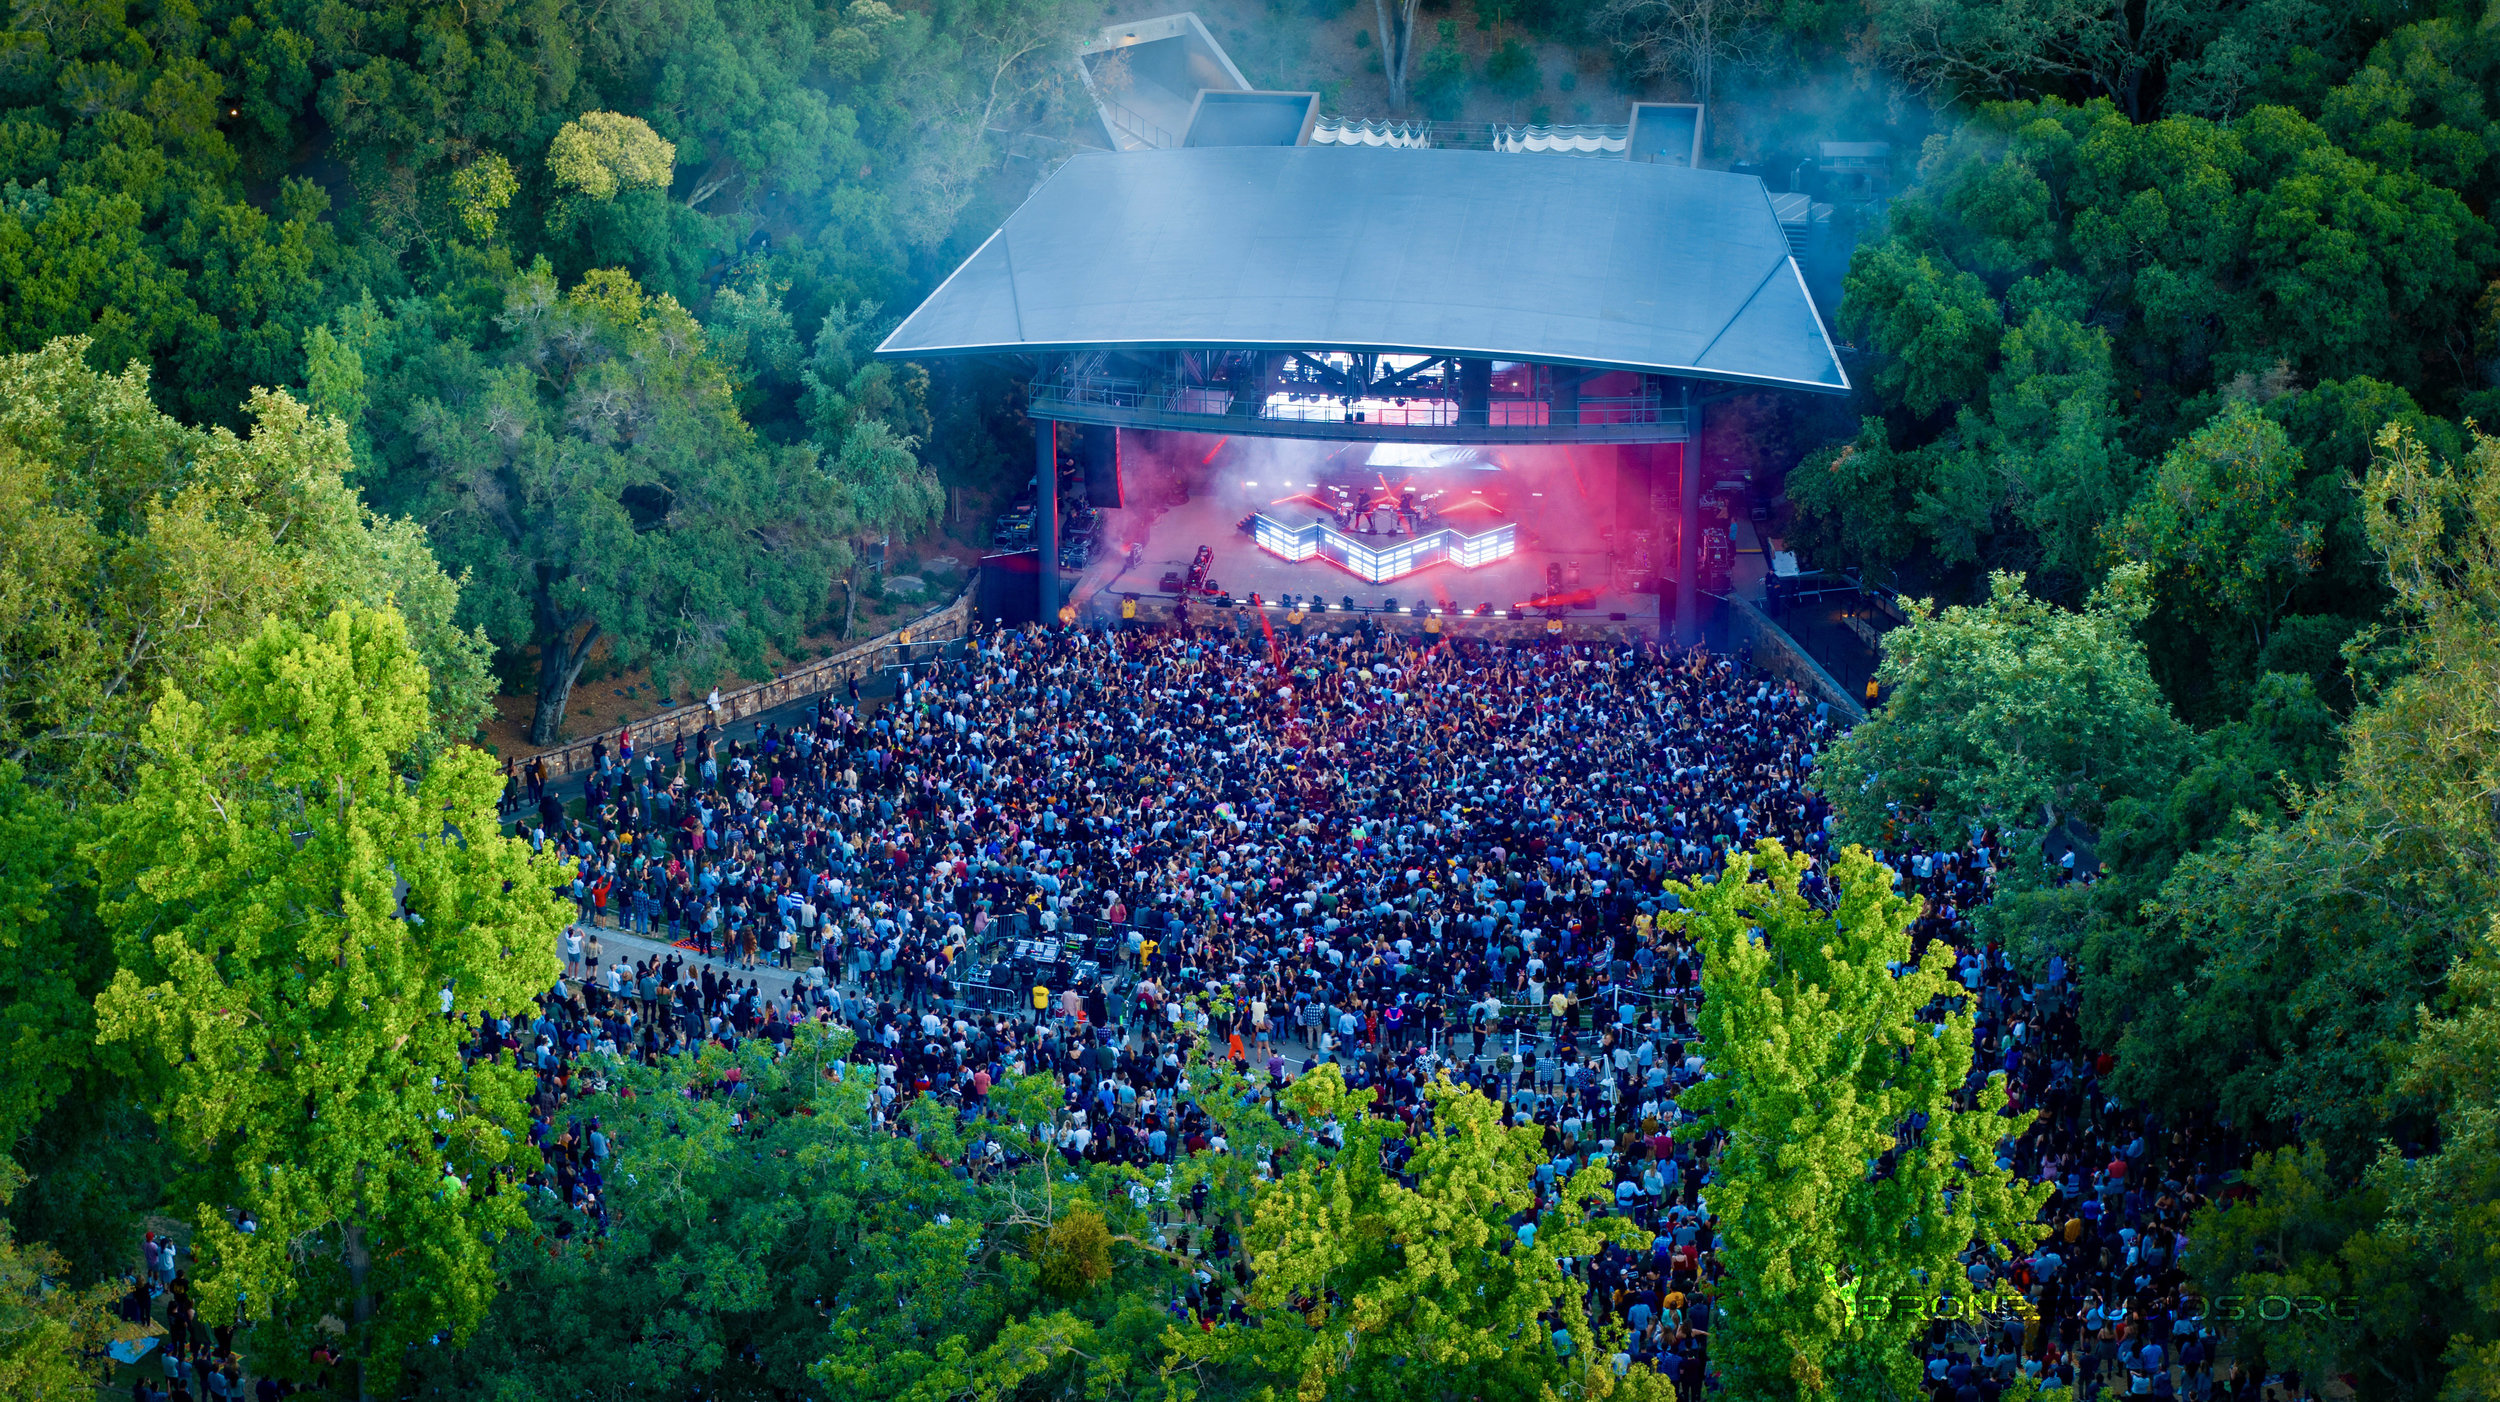 ODESZA at Stanford - Drone operator for the Grand Opening of Frost Amphitheater with Odesza, Gilligan Moss and Robotaki